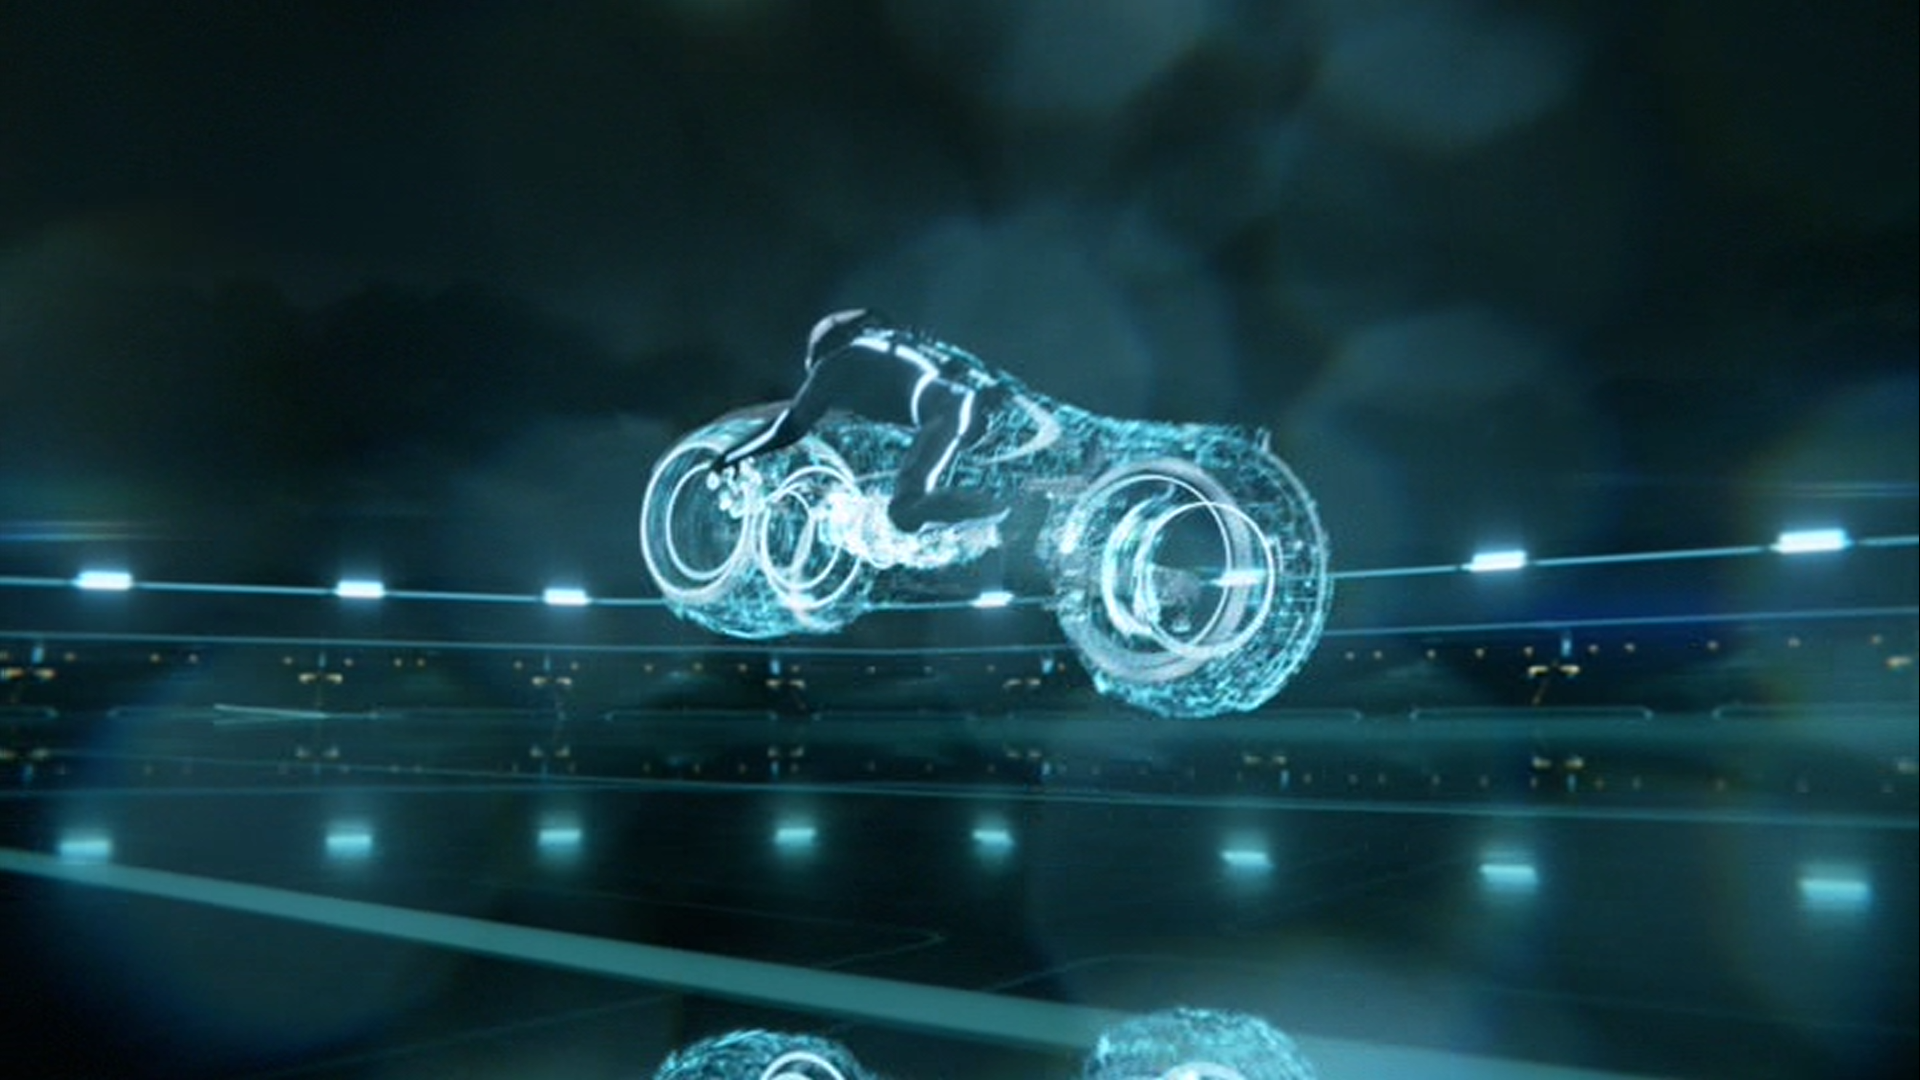 Wallpaper 3d Bike Tron Legacy Download: Tron Wallpaper